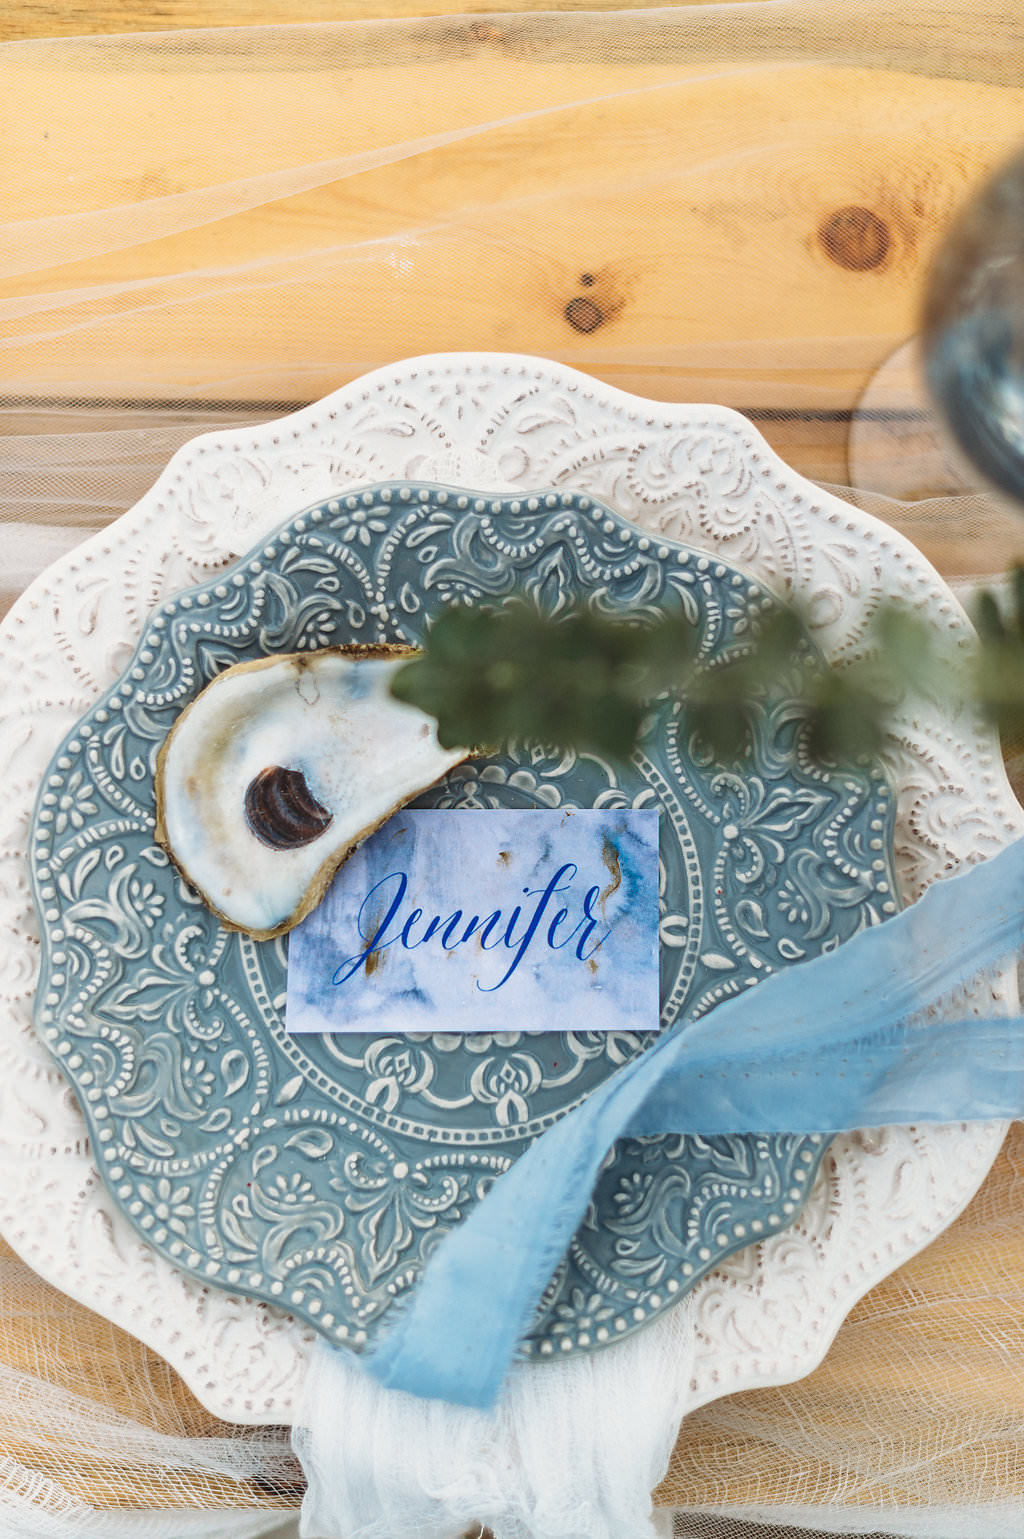 Coastal Beach Redington Shores Wedding Reception Decor, Dusty Blue Textured Plate on Ivory Textured Plate, Custom Watercolor Blue Script Place Card with Oyster Shell and Blue Tulle Ribbon